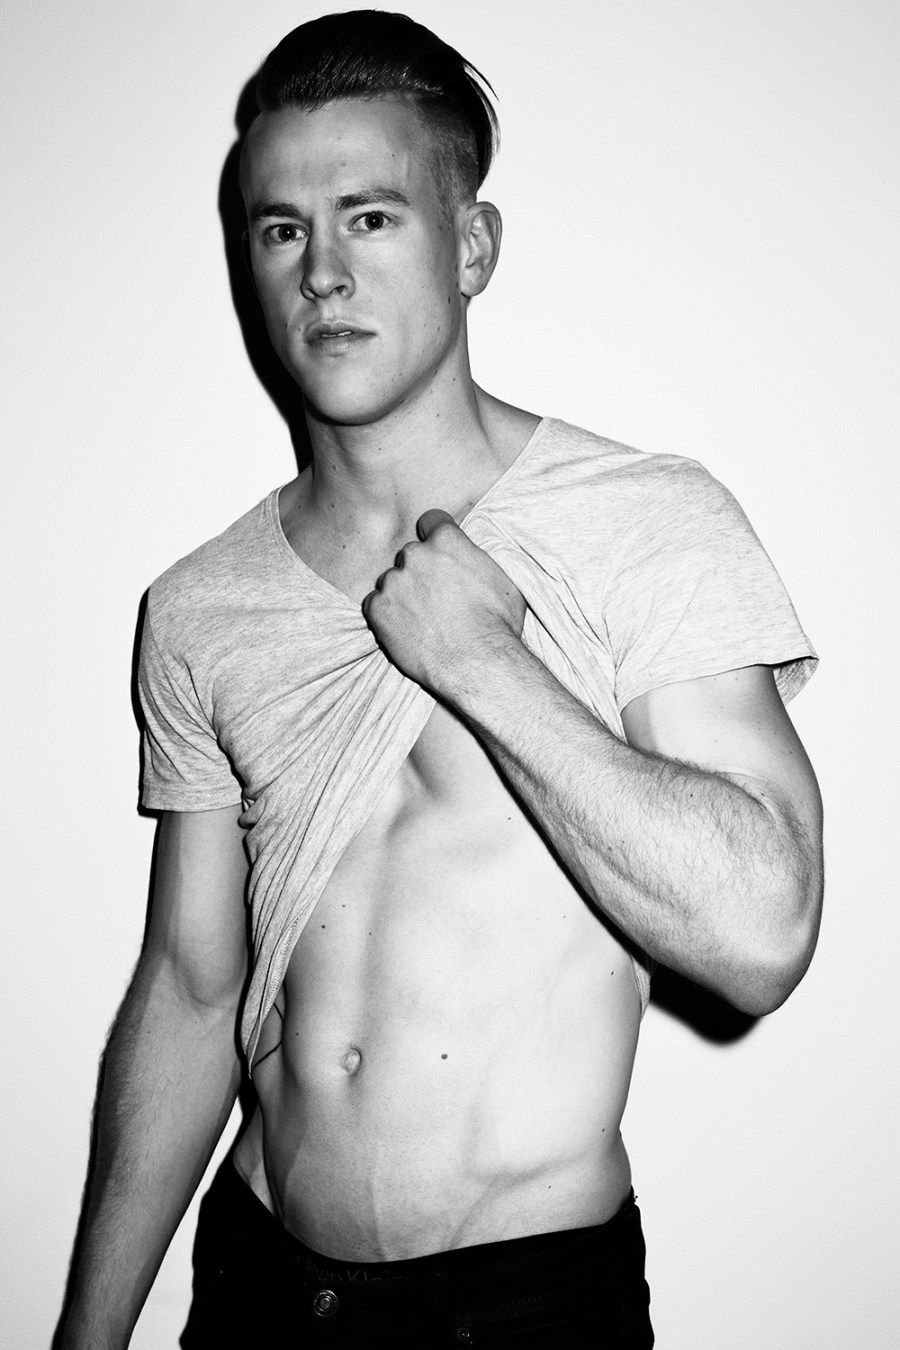 Tom Polson by Trent Pace for Fashionably Male (1)